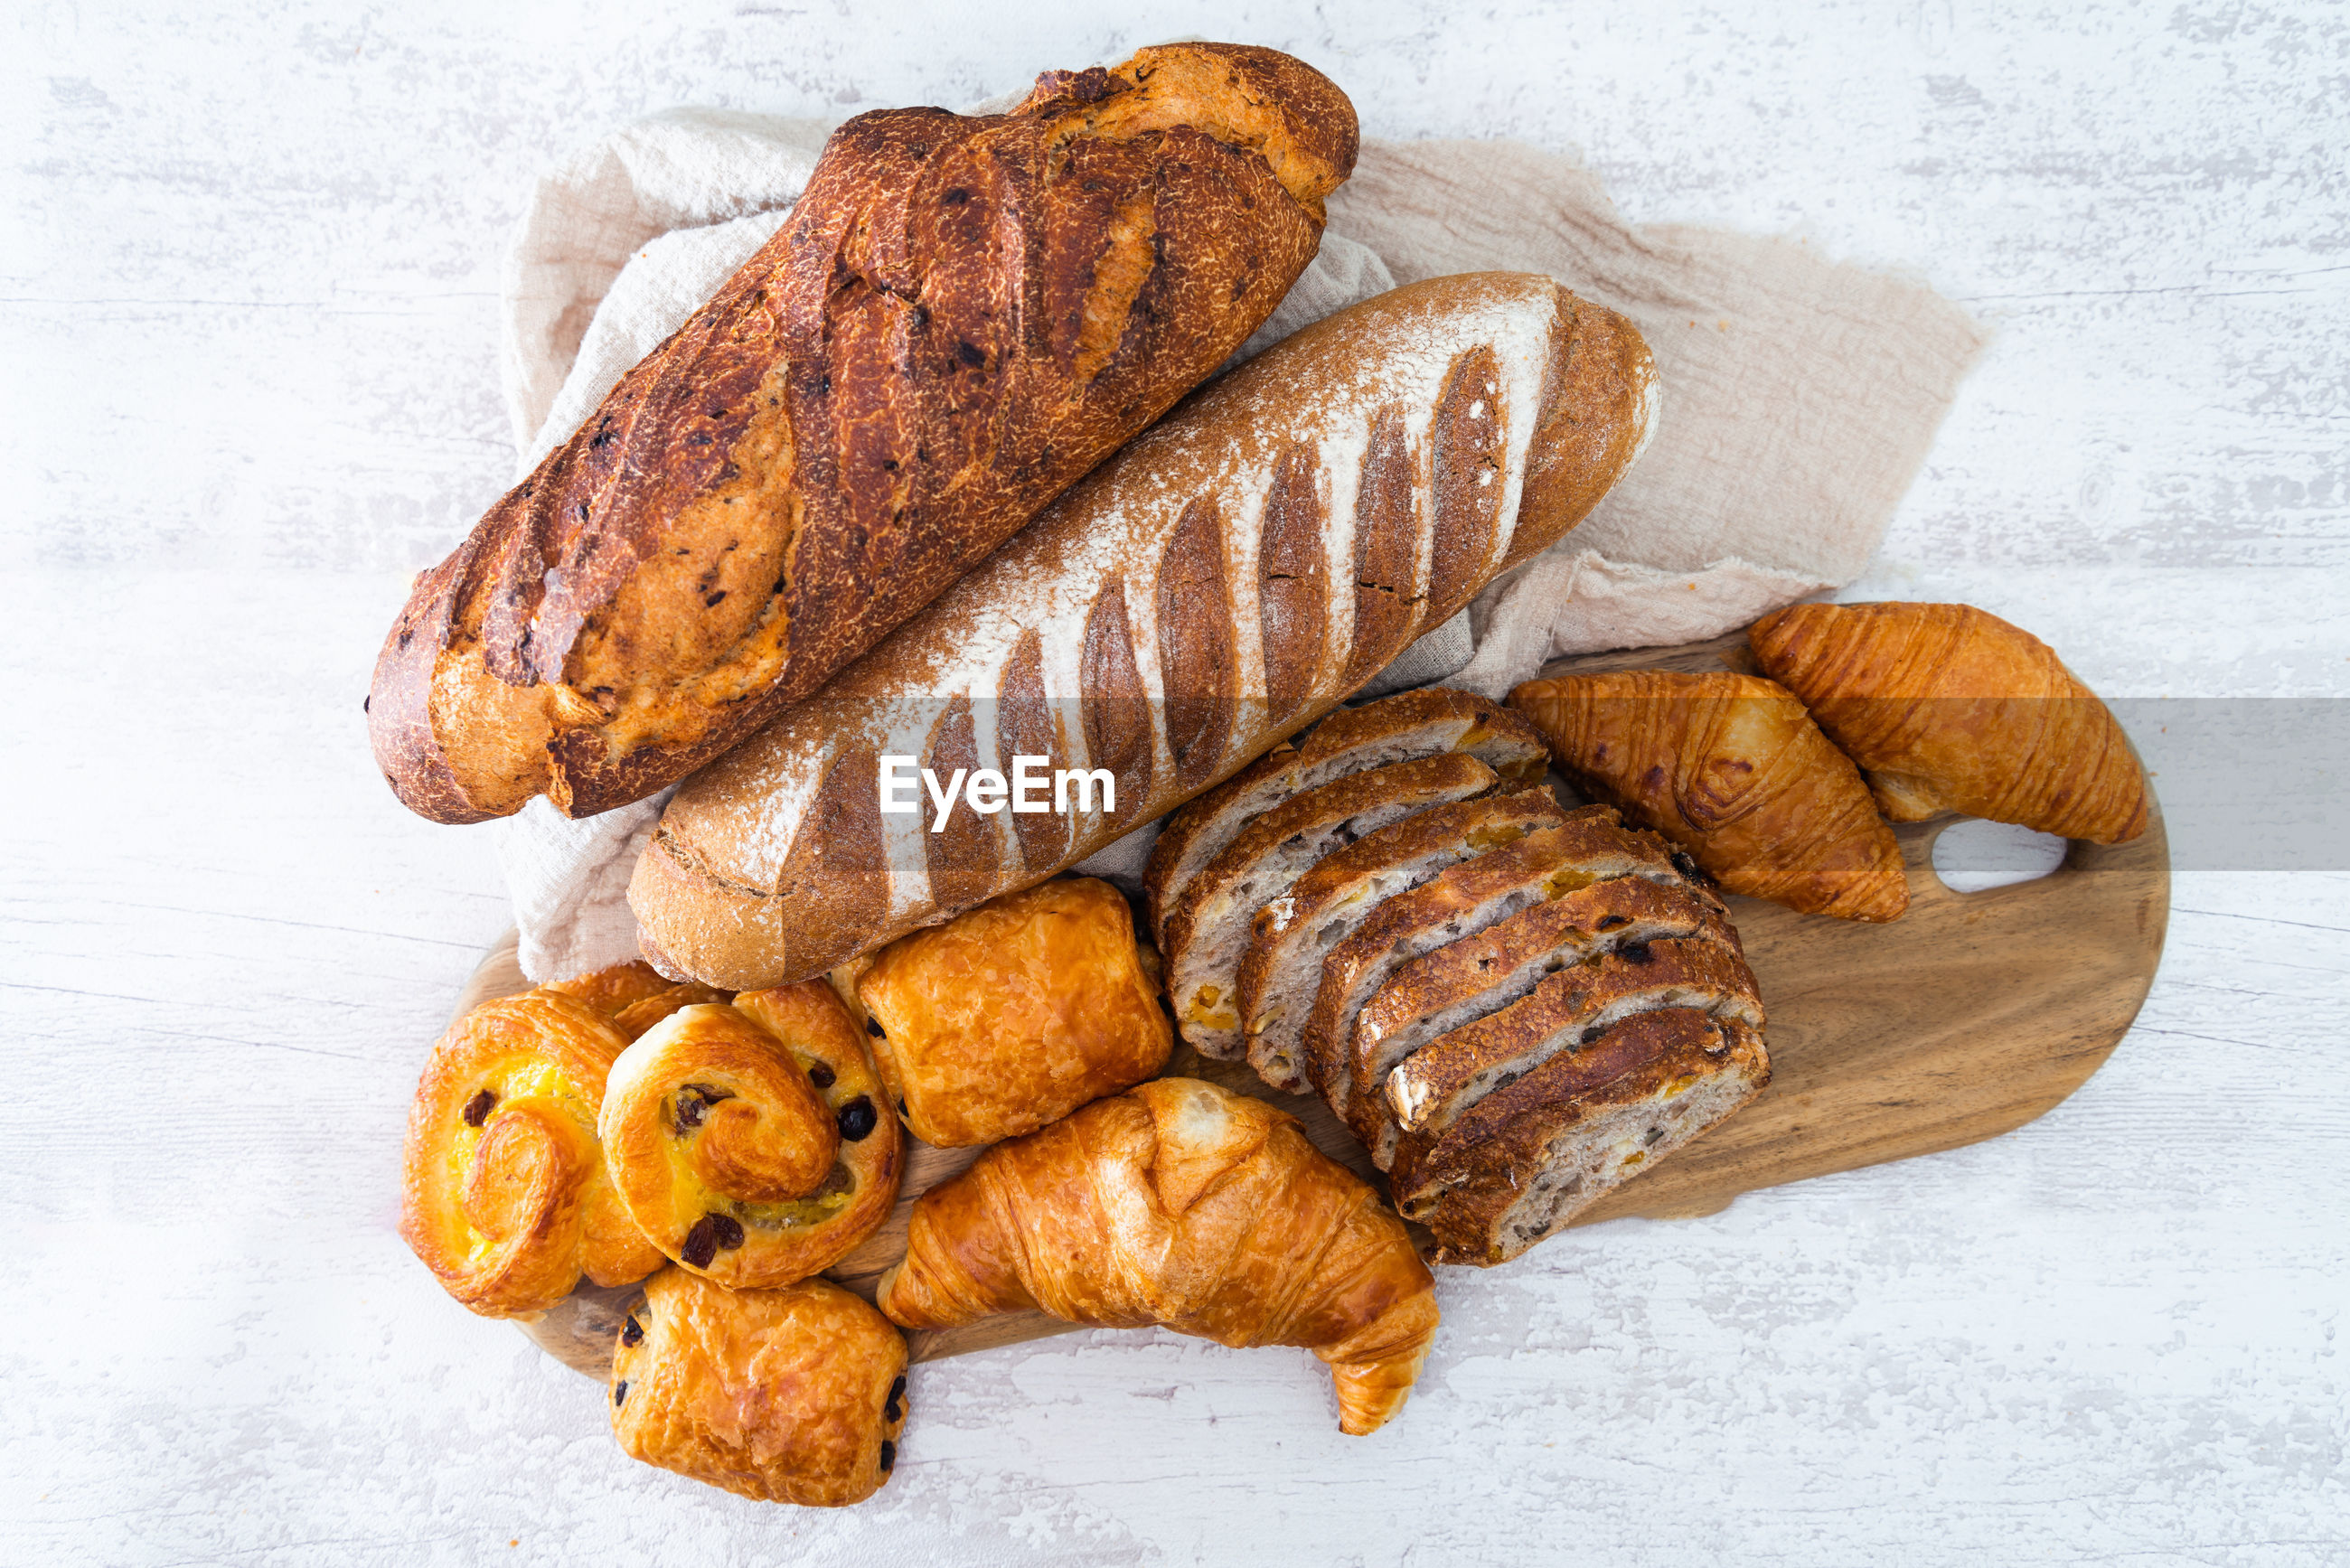 Directly above shot of breads and croissants on cutting board over table